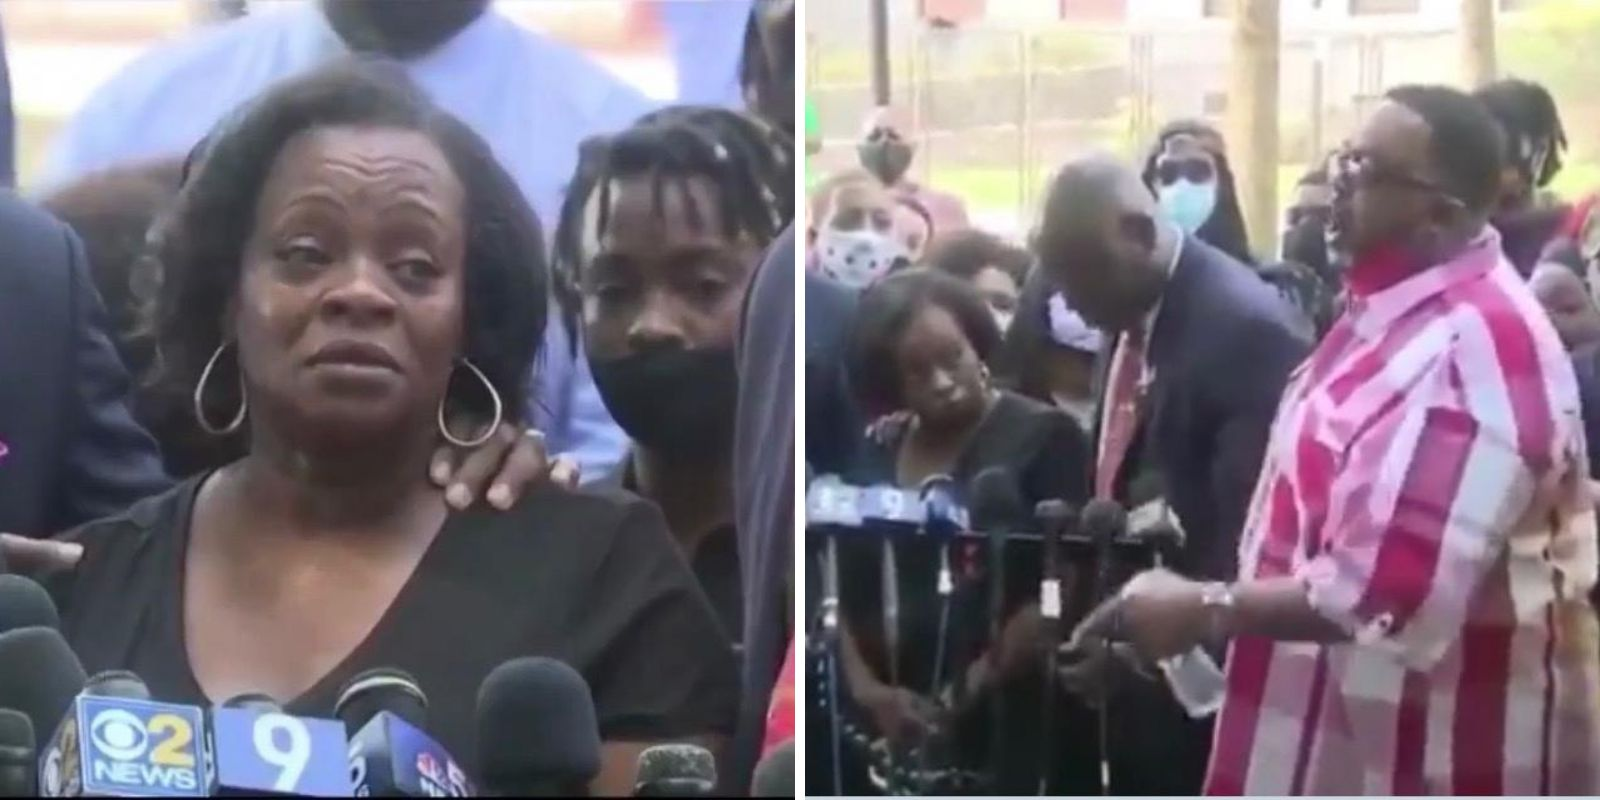 WATCH: Jacob Blake's mother calls for healing while his father expresses racial distrust